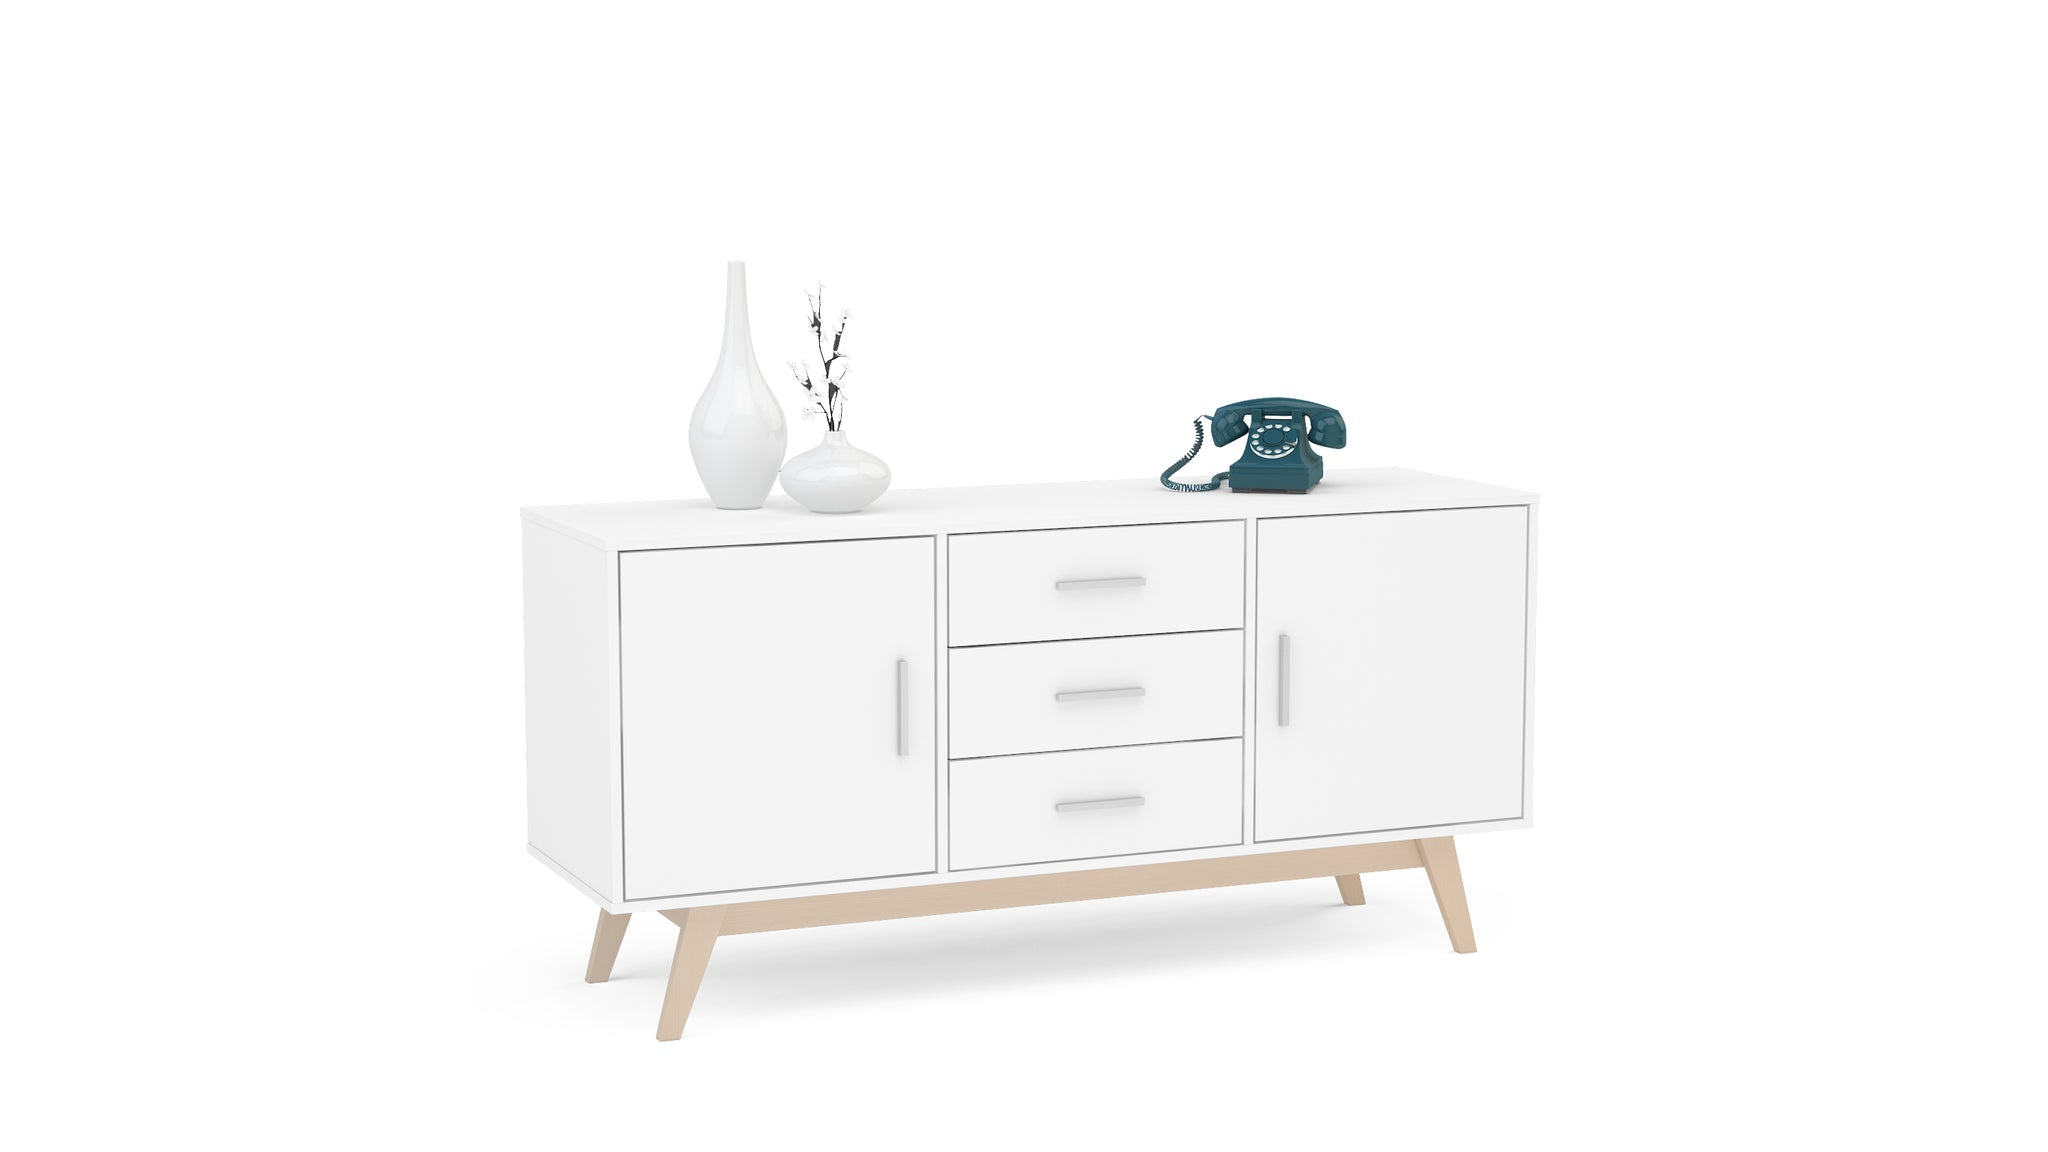 Hinde 2 Door 3 Drawer Sideboard in White